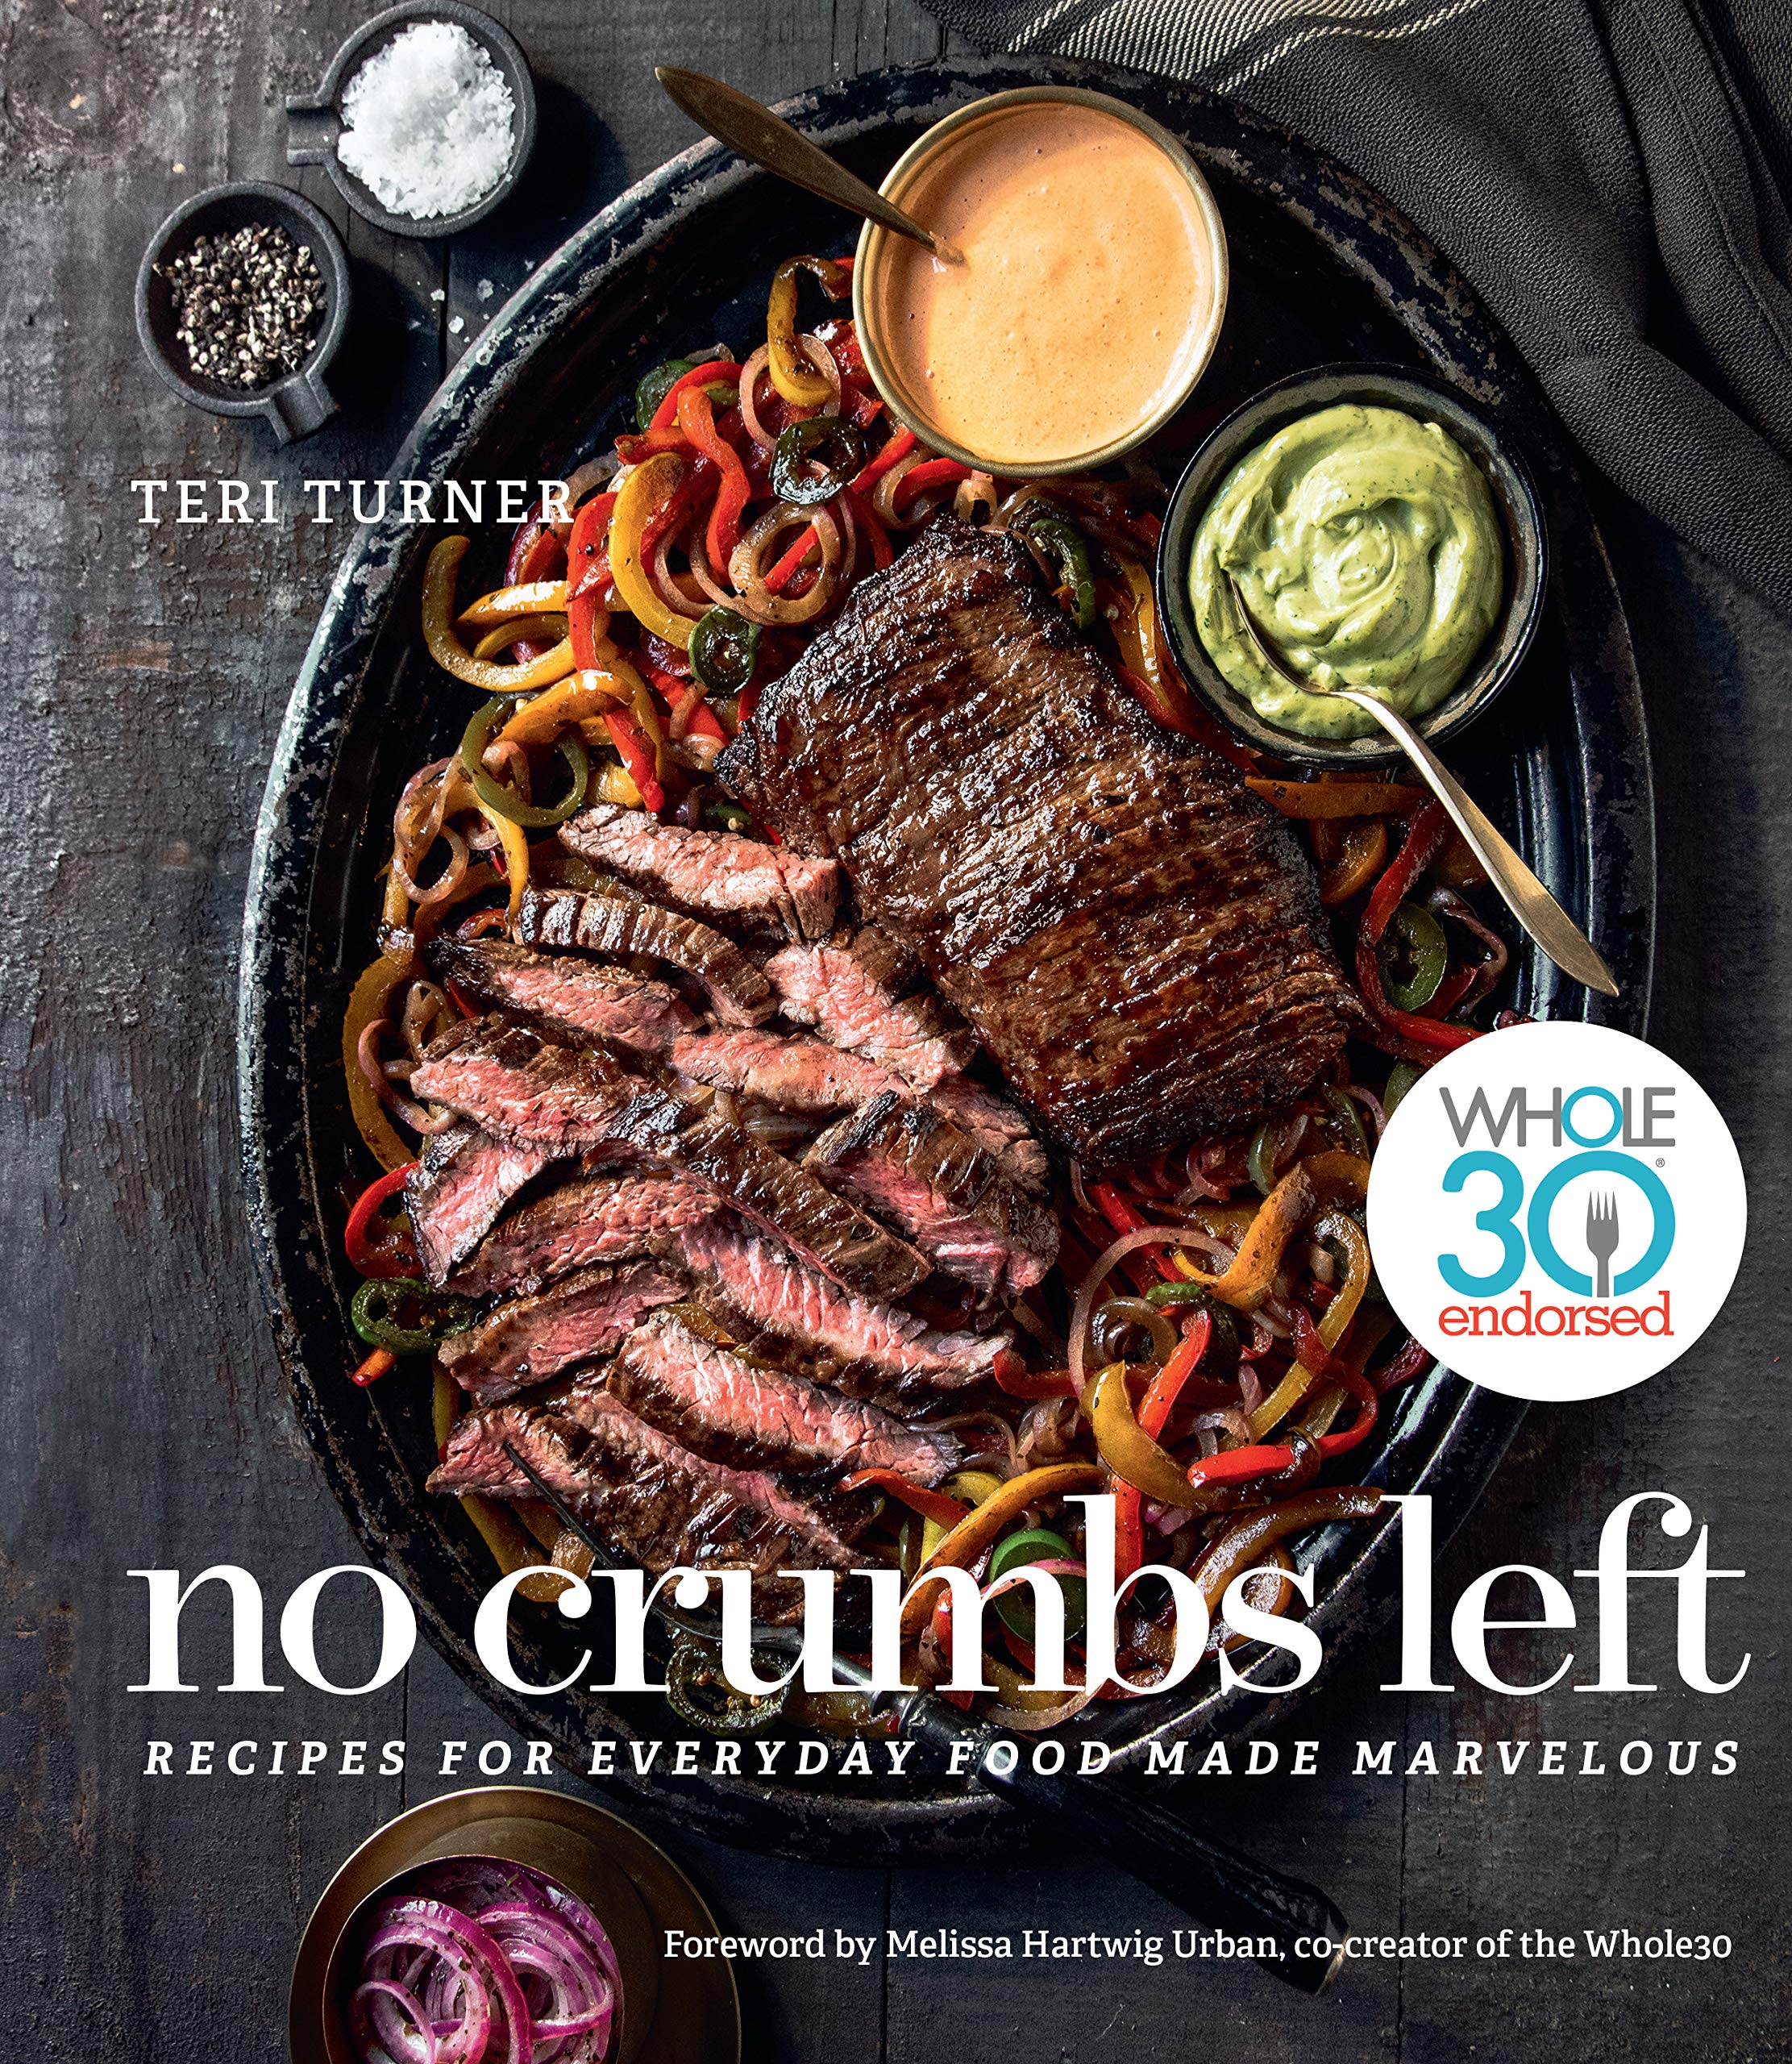 No Crumbs Left Endorsed Marvelous product image